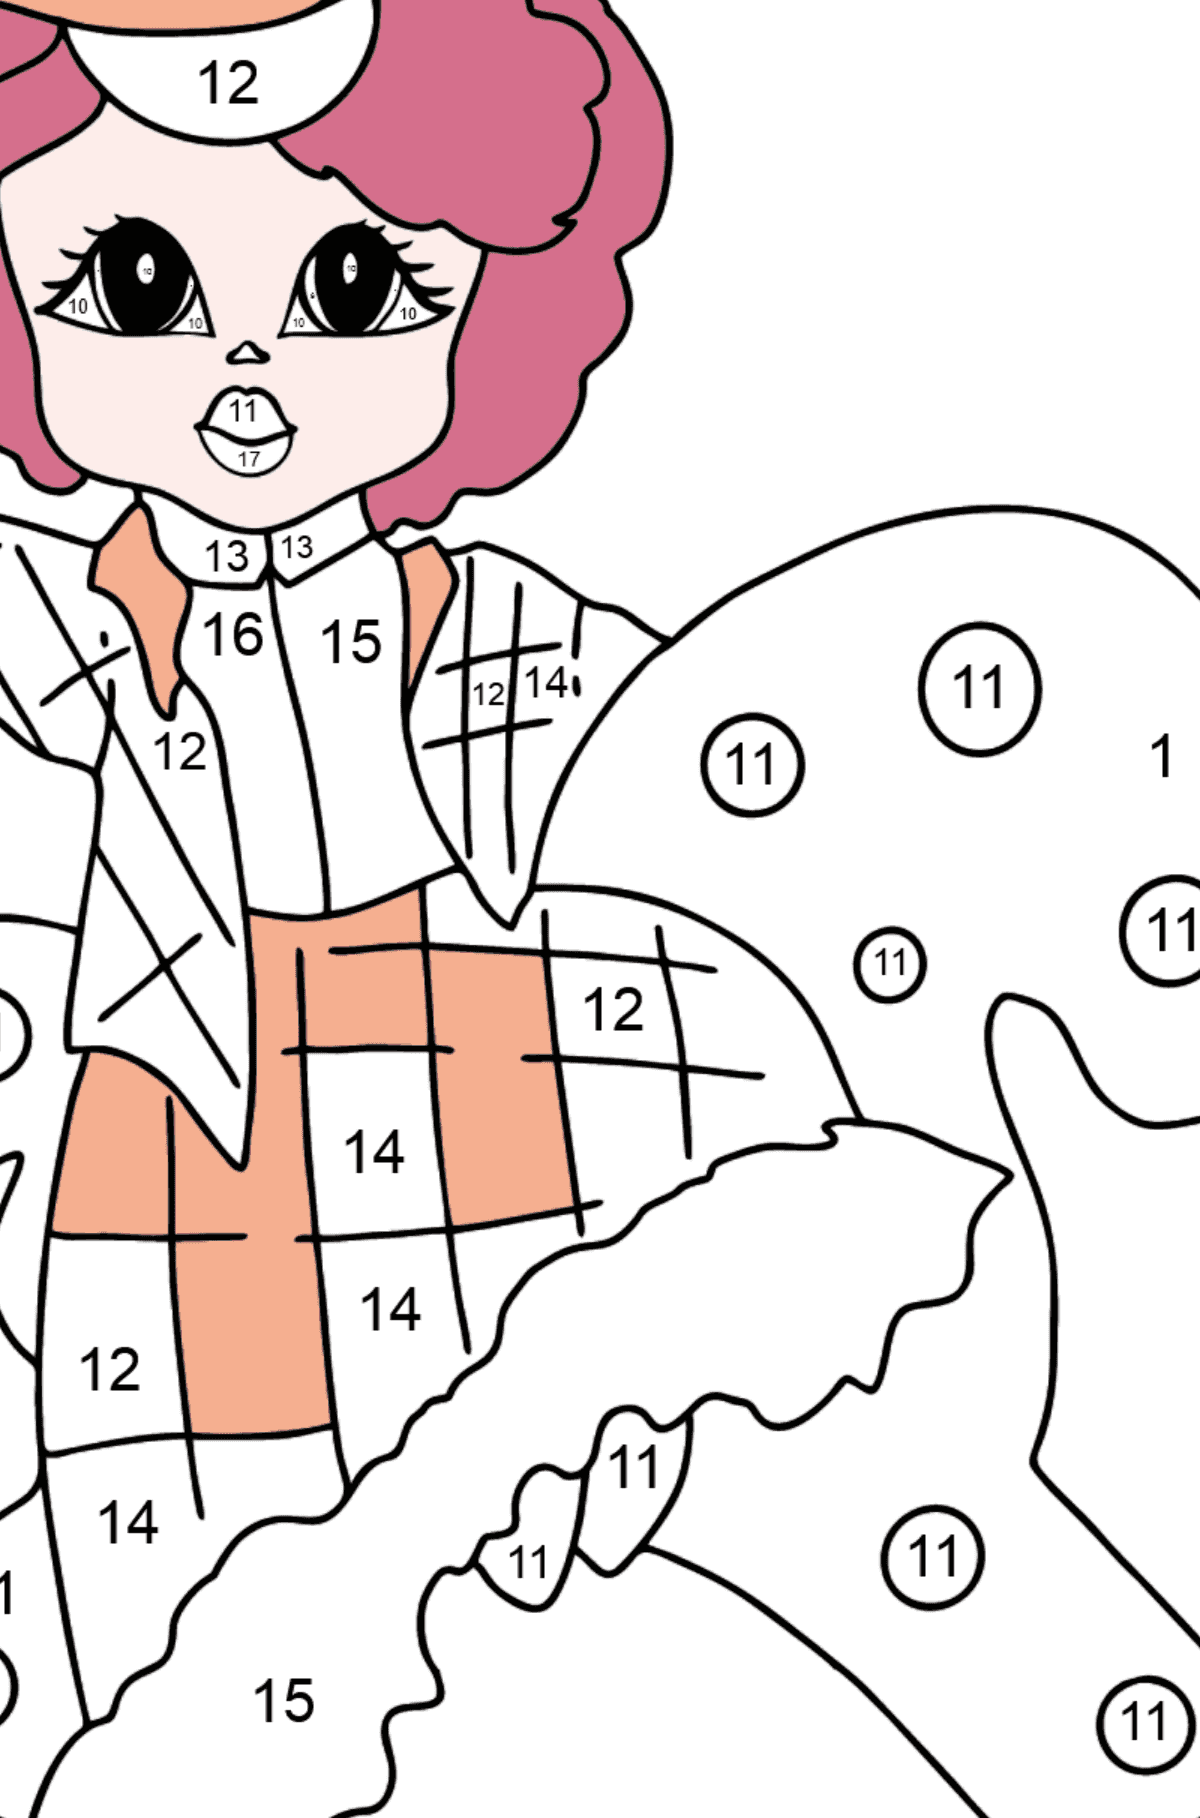 Coloring Page - A Princess on a Horse - For Girls - Coloring by Numbers for Kids